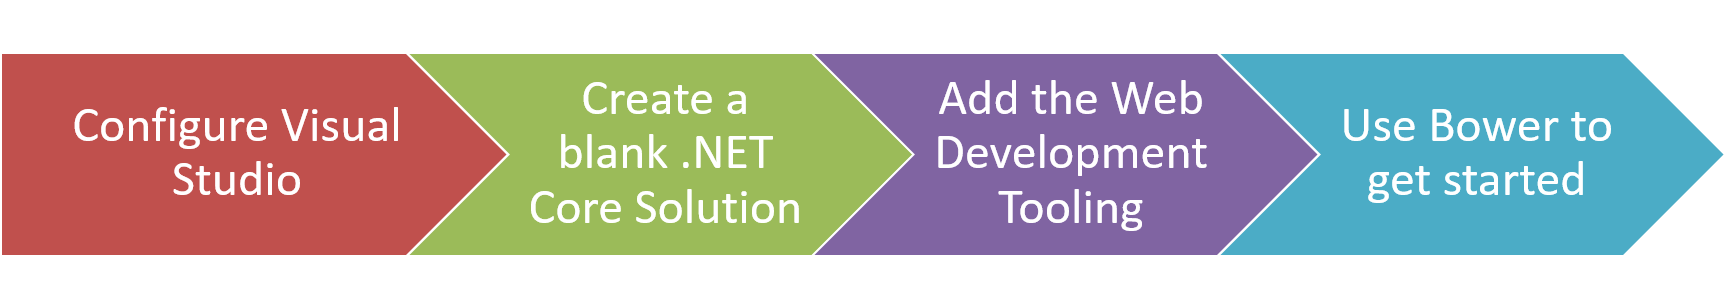 Intro to AngularJS and .NET Core Phase 1 Outline